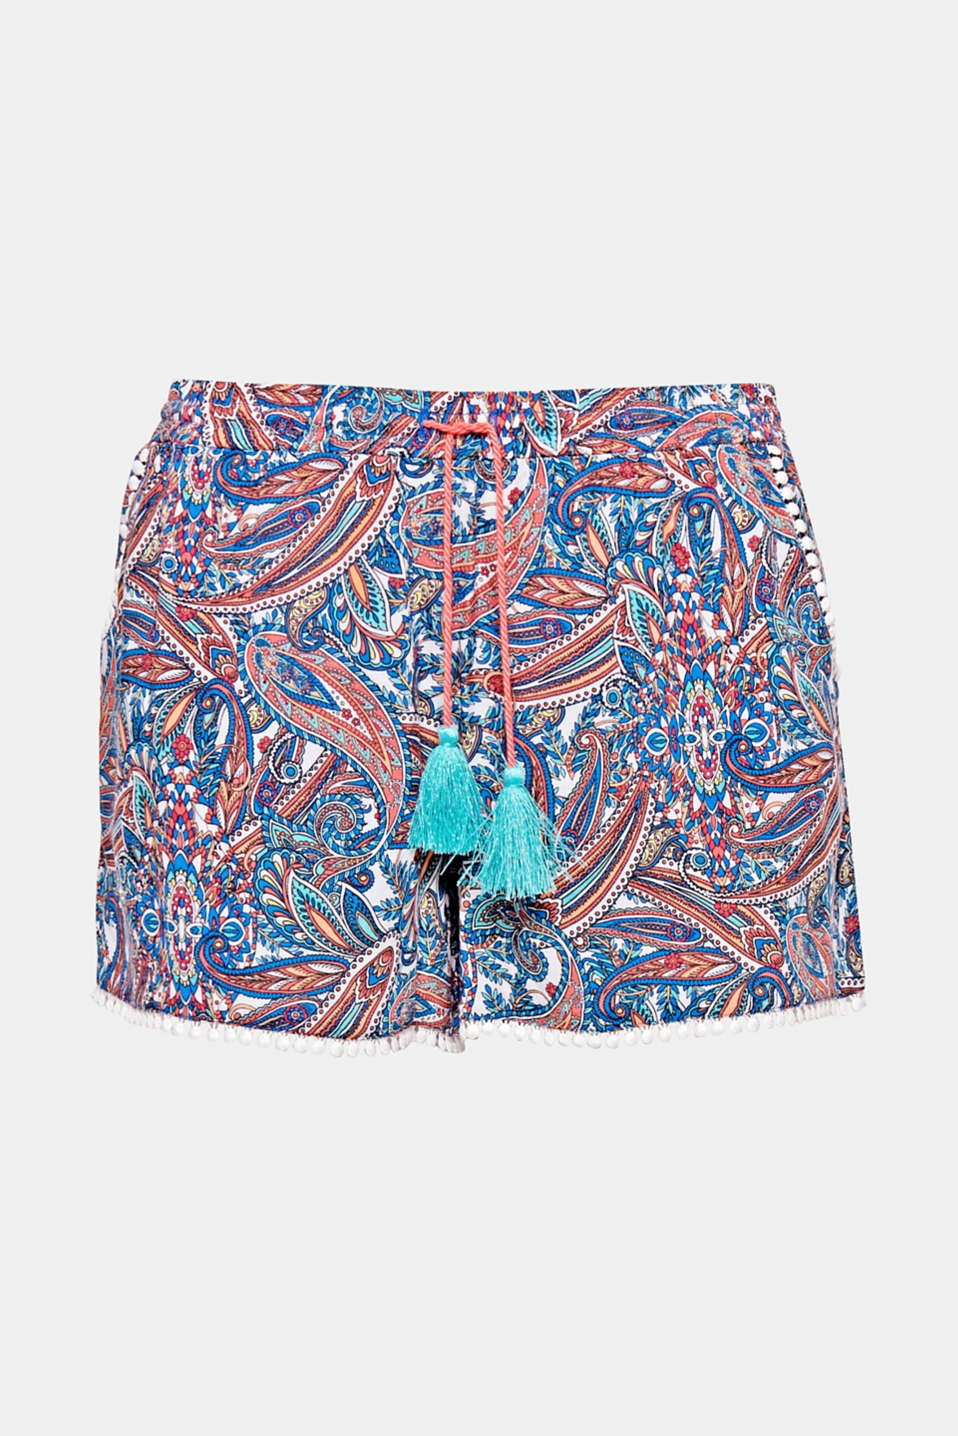 PELICAN COLLECTION - A perfect enhancement to your bikini or swimsuit: woven shorts with colourful paisley print!